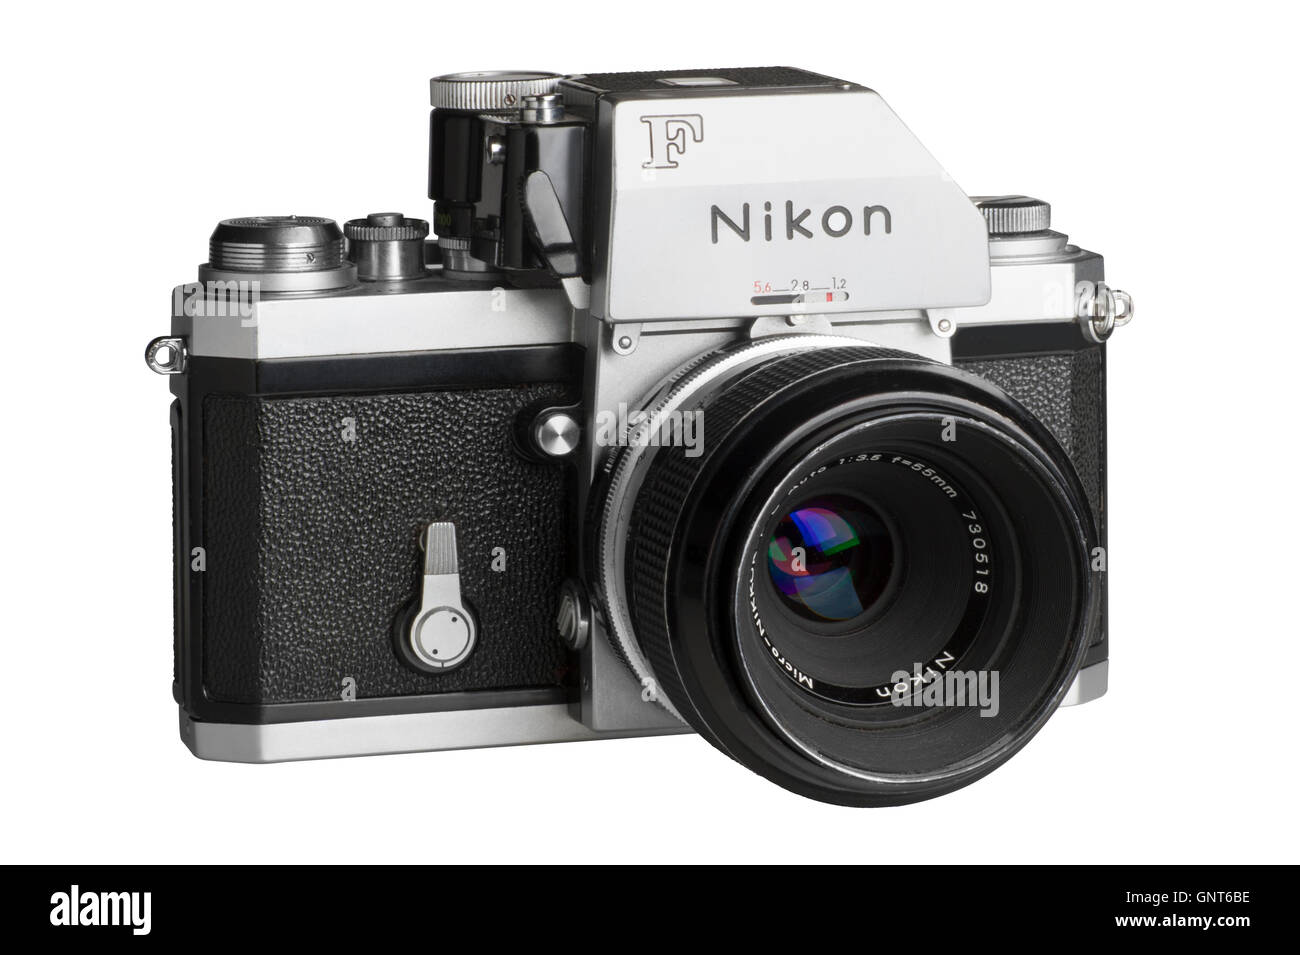 1971 Nikon F with Photomic FTn metering head, 55mm Micro-Nikkor attached.  Facing right - Stock Image